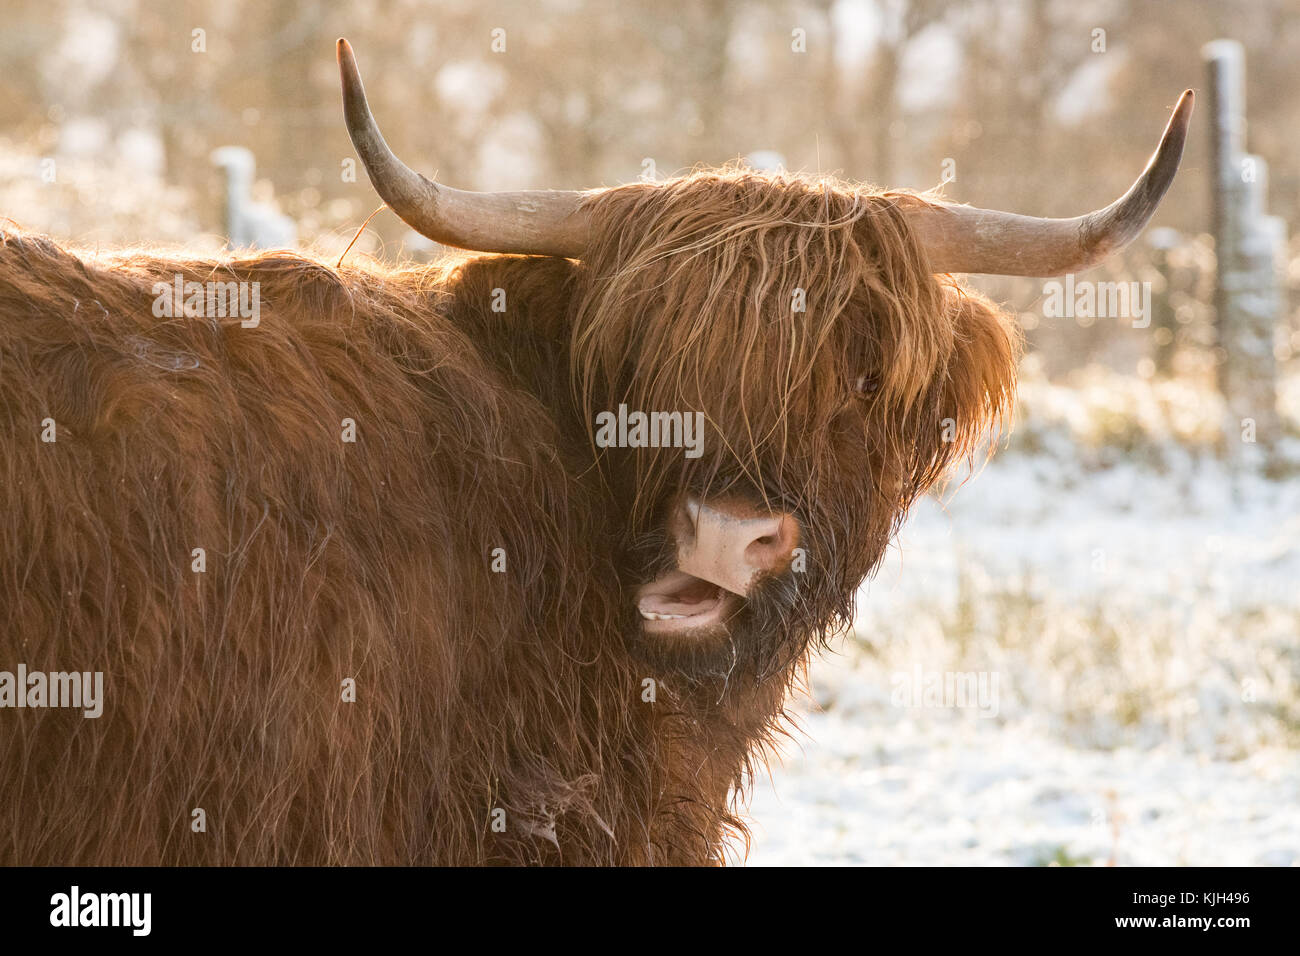 Stirlingshire, Scotland, UK. 24th Nov, 2017. UK weather: a highland cow drying off in the winter sunshine after - Stock Image